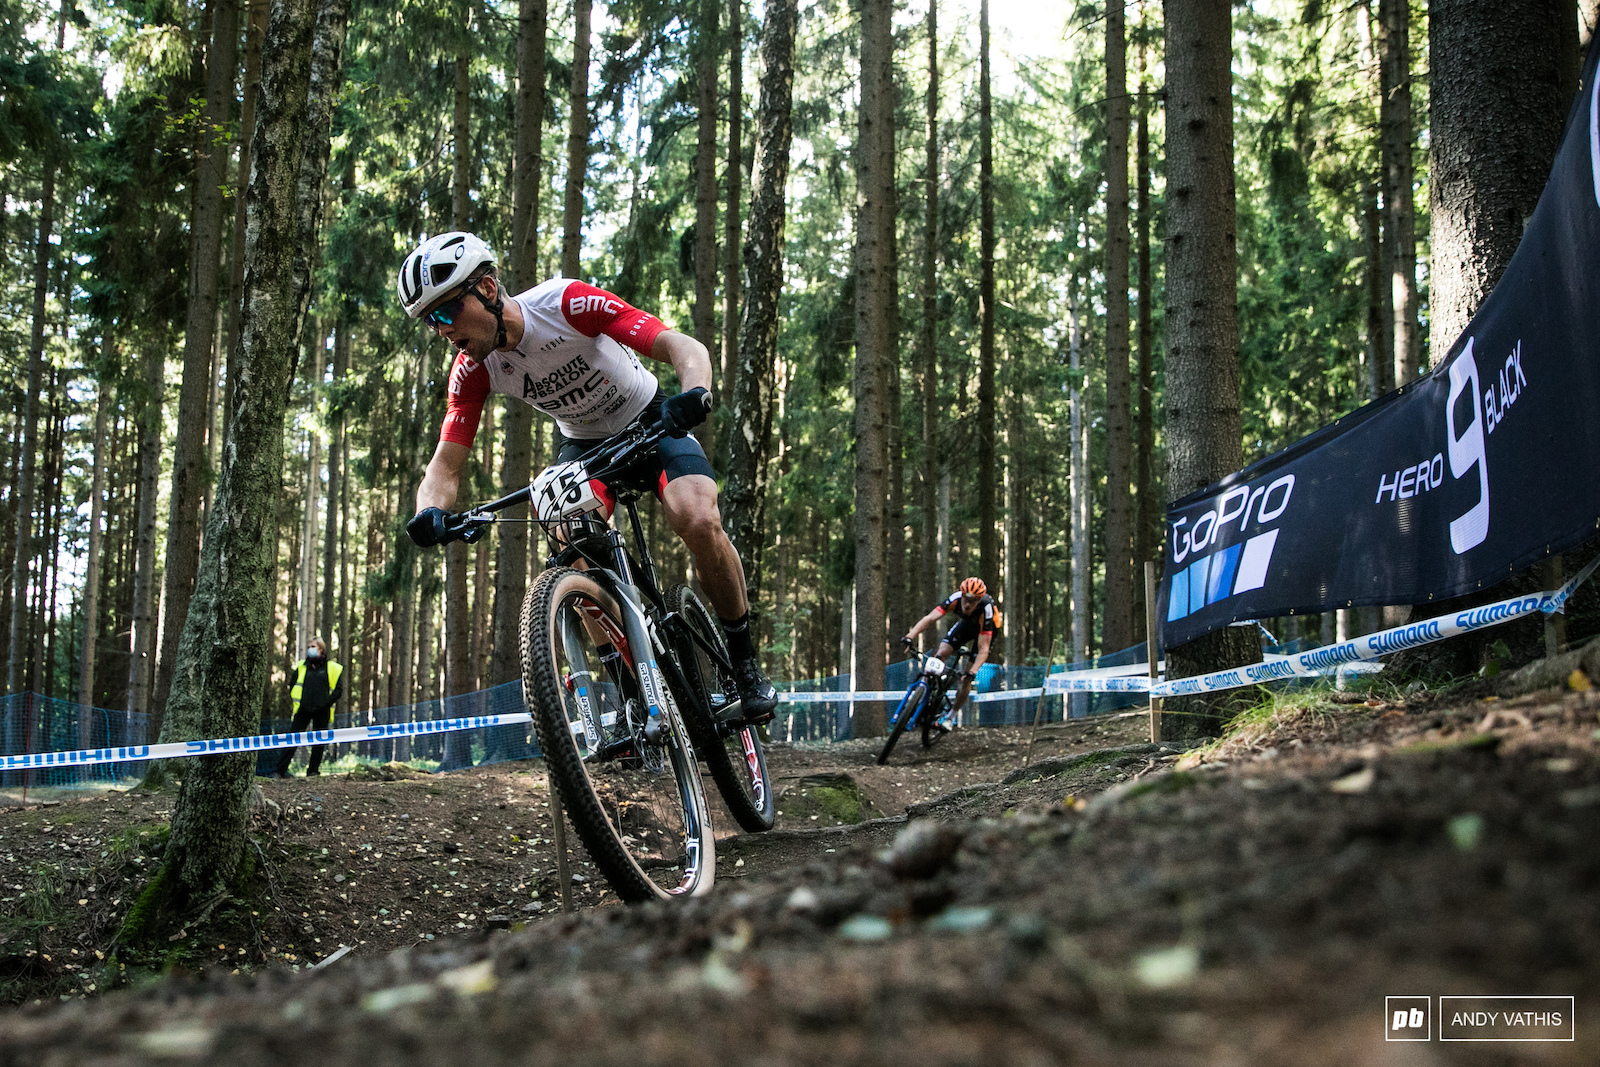 Filippo Colombo rounds off the top 10.